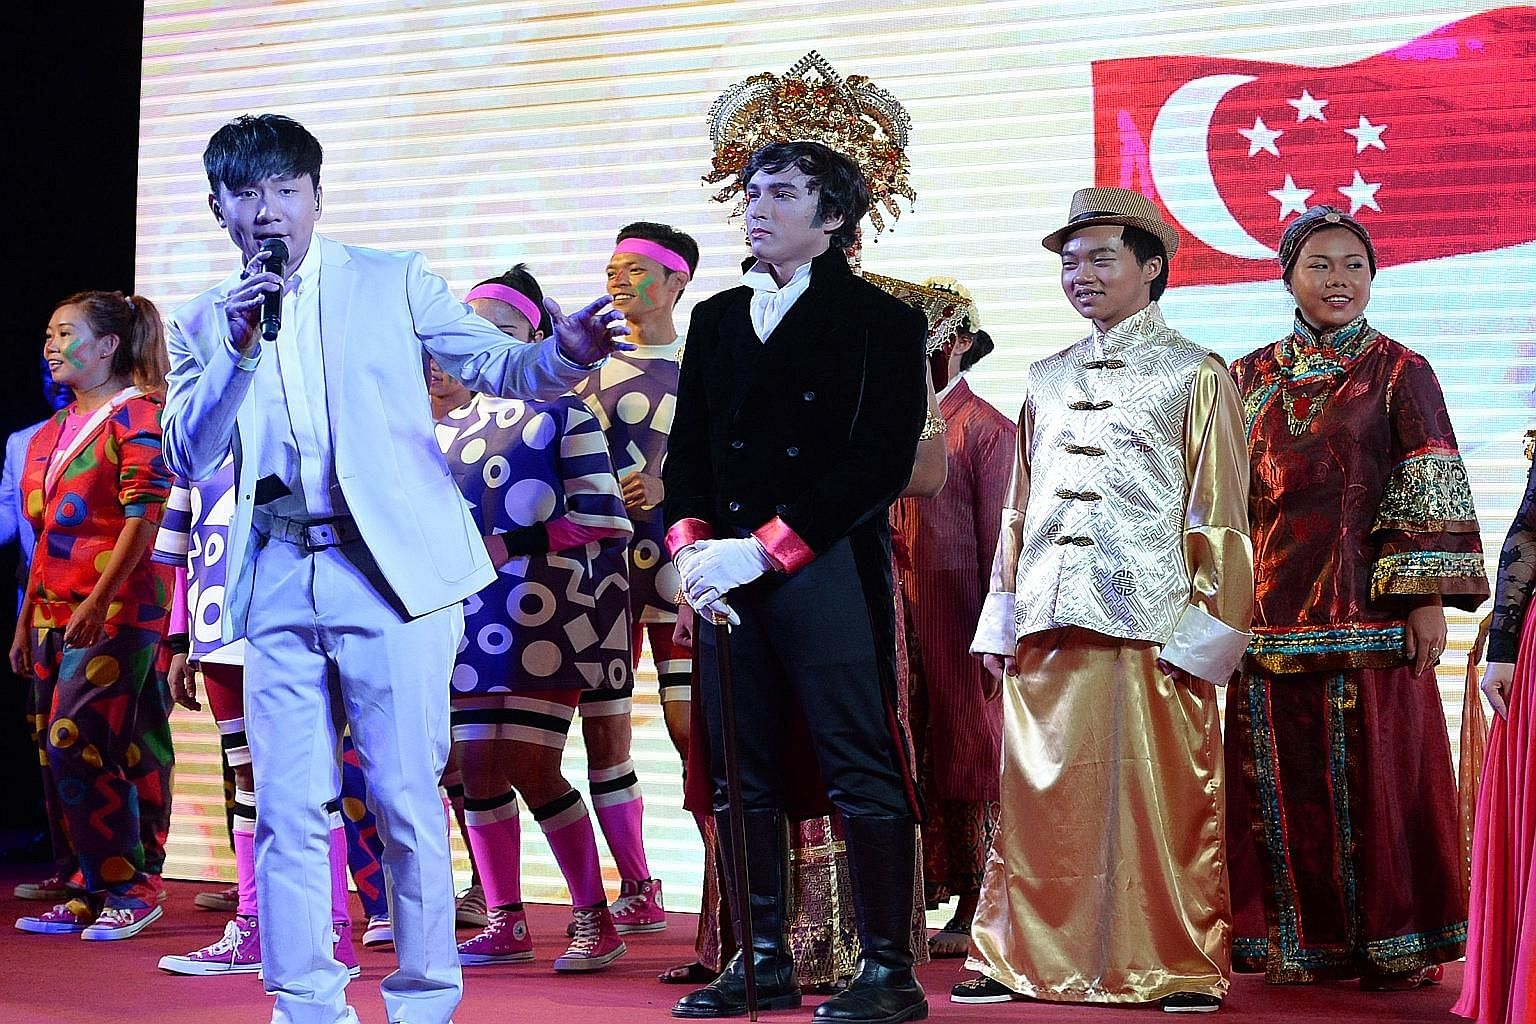 JJ Lin (above) will sing Our Singapore at the NDP show, which will trace the nation's progress and look to the future.